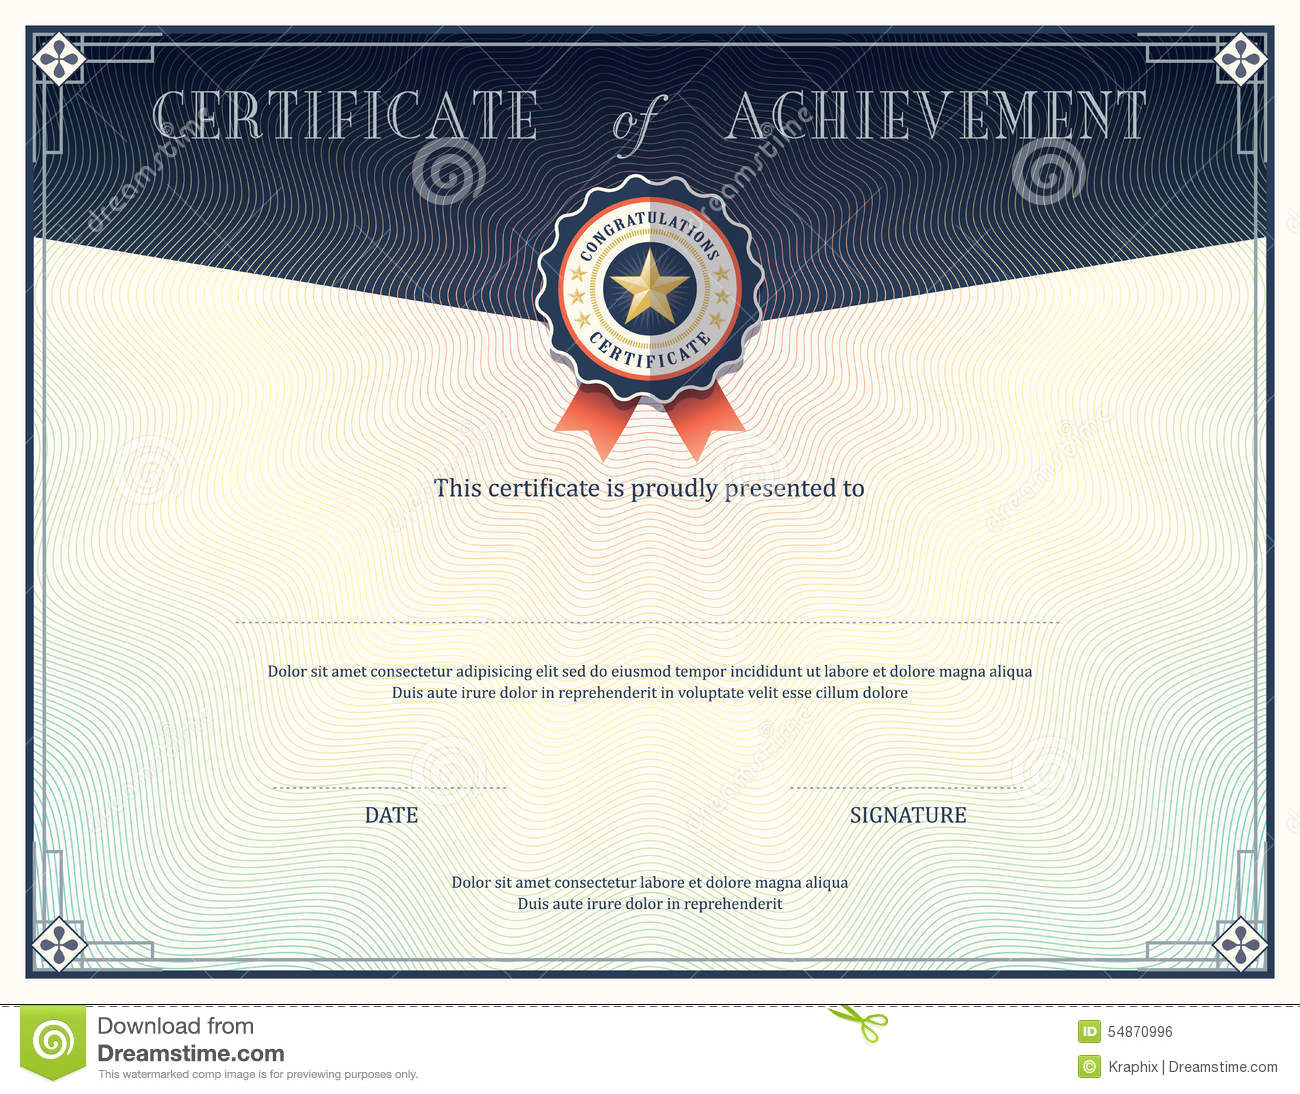 Certificate Of Achievement Design Template Vector Image – Template Certificate of Achievement